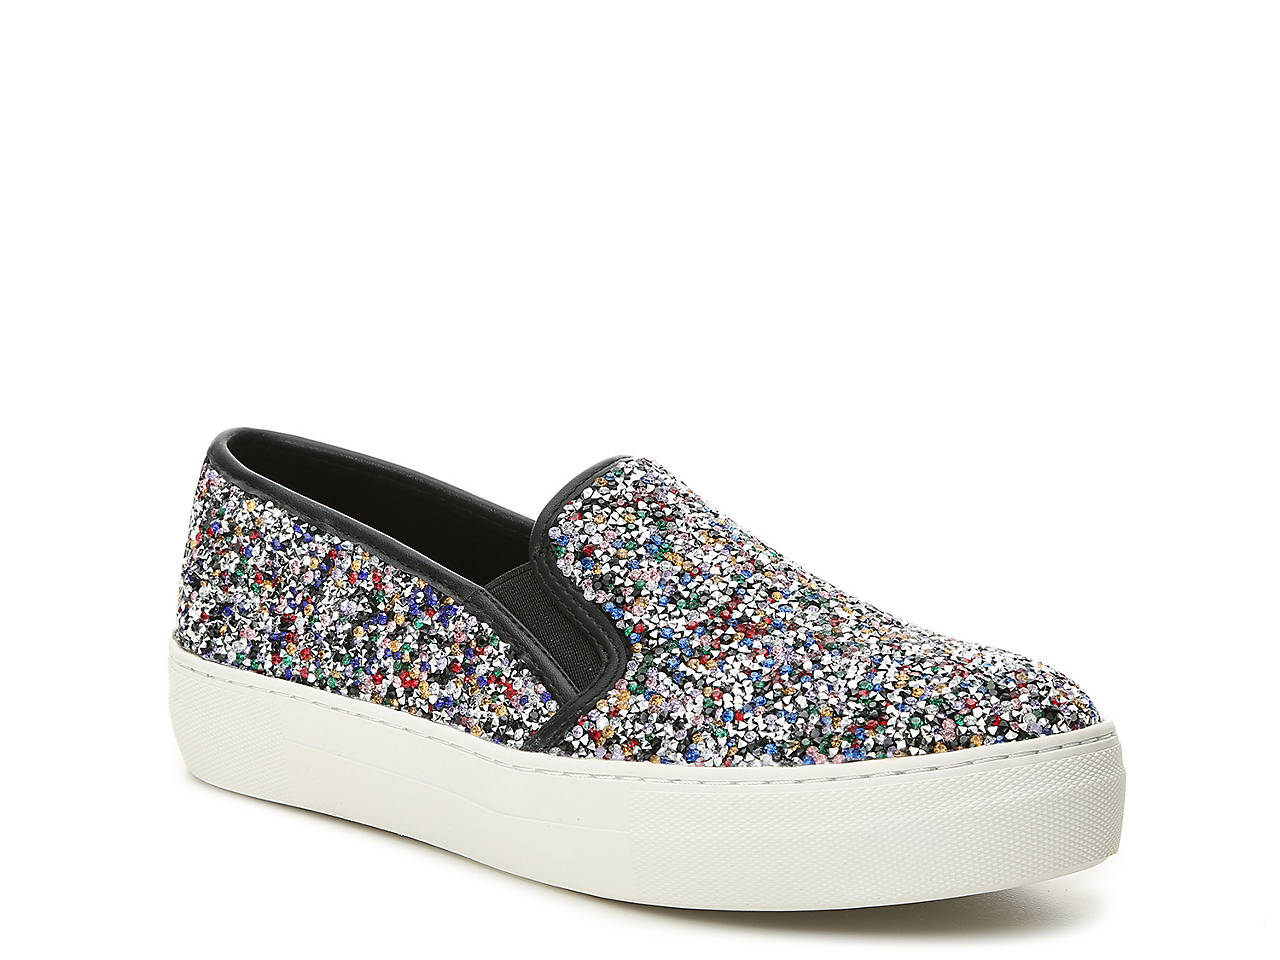 226073a844e Steve Madden Gracious Platform Slip-On Sneaker Women s Shoes